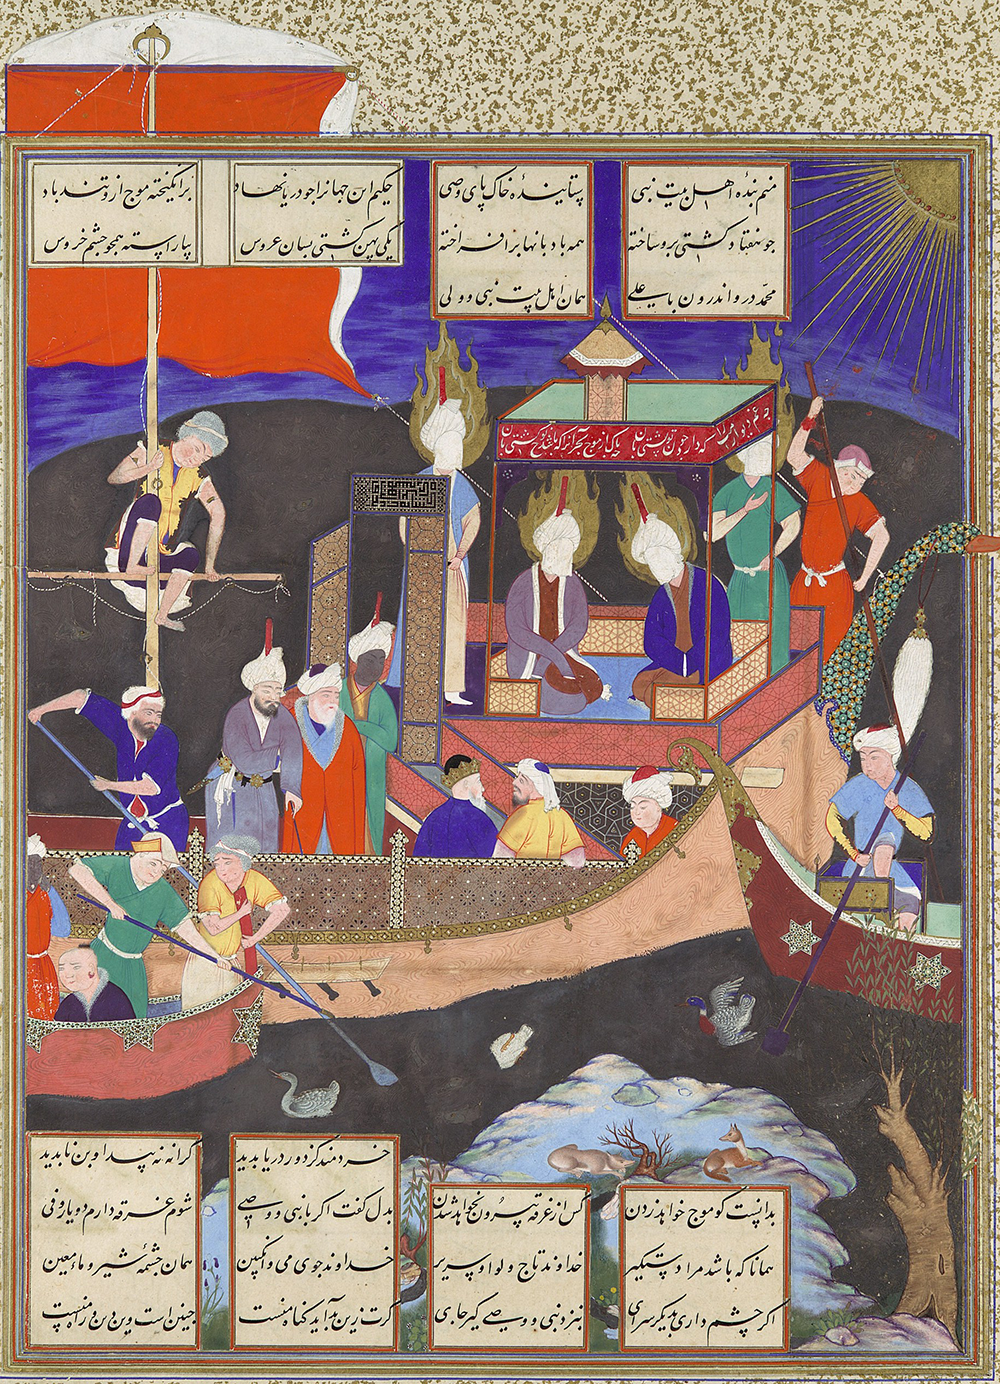 "Mirza Ali, ""Firdausi's Parable of the Ship of Shi'ism"" (detail), folio 18v from the Shahnama (Book of Kings) of Shah Tahmasp, ca. 1530–1535. Metropolitan Museum of Art, Gift of Arthur A. Houghton Jr., 1970."